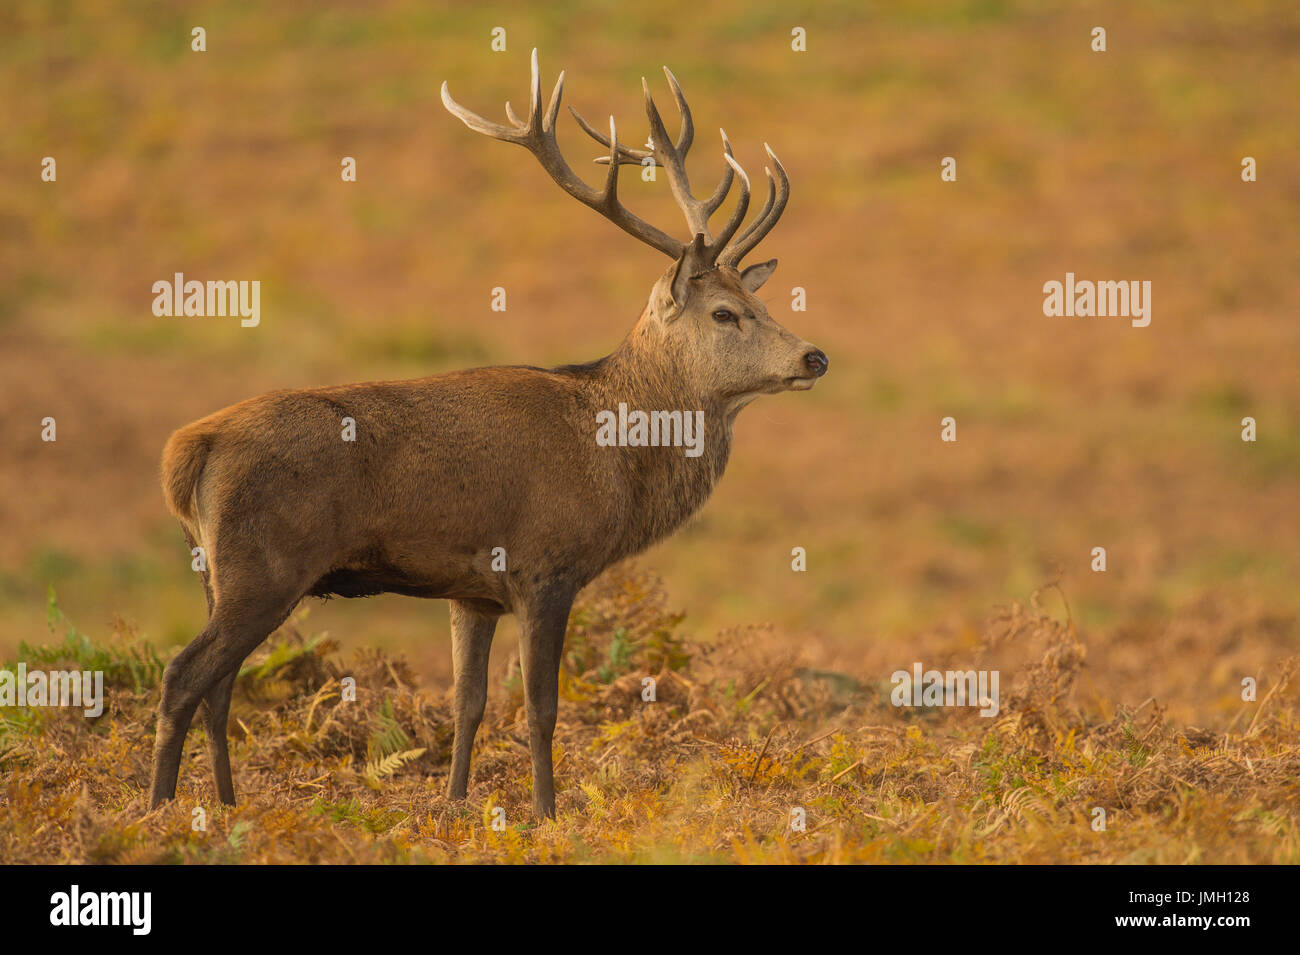 A Red deer stag during the rutting season - Stock Image